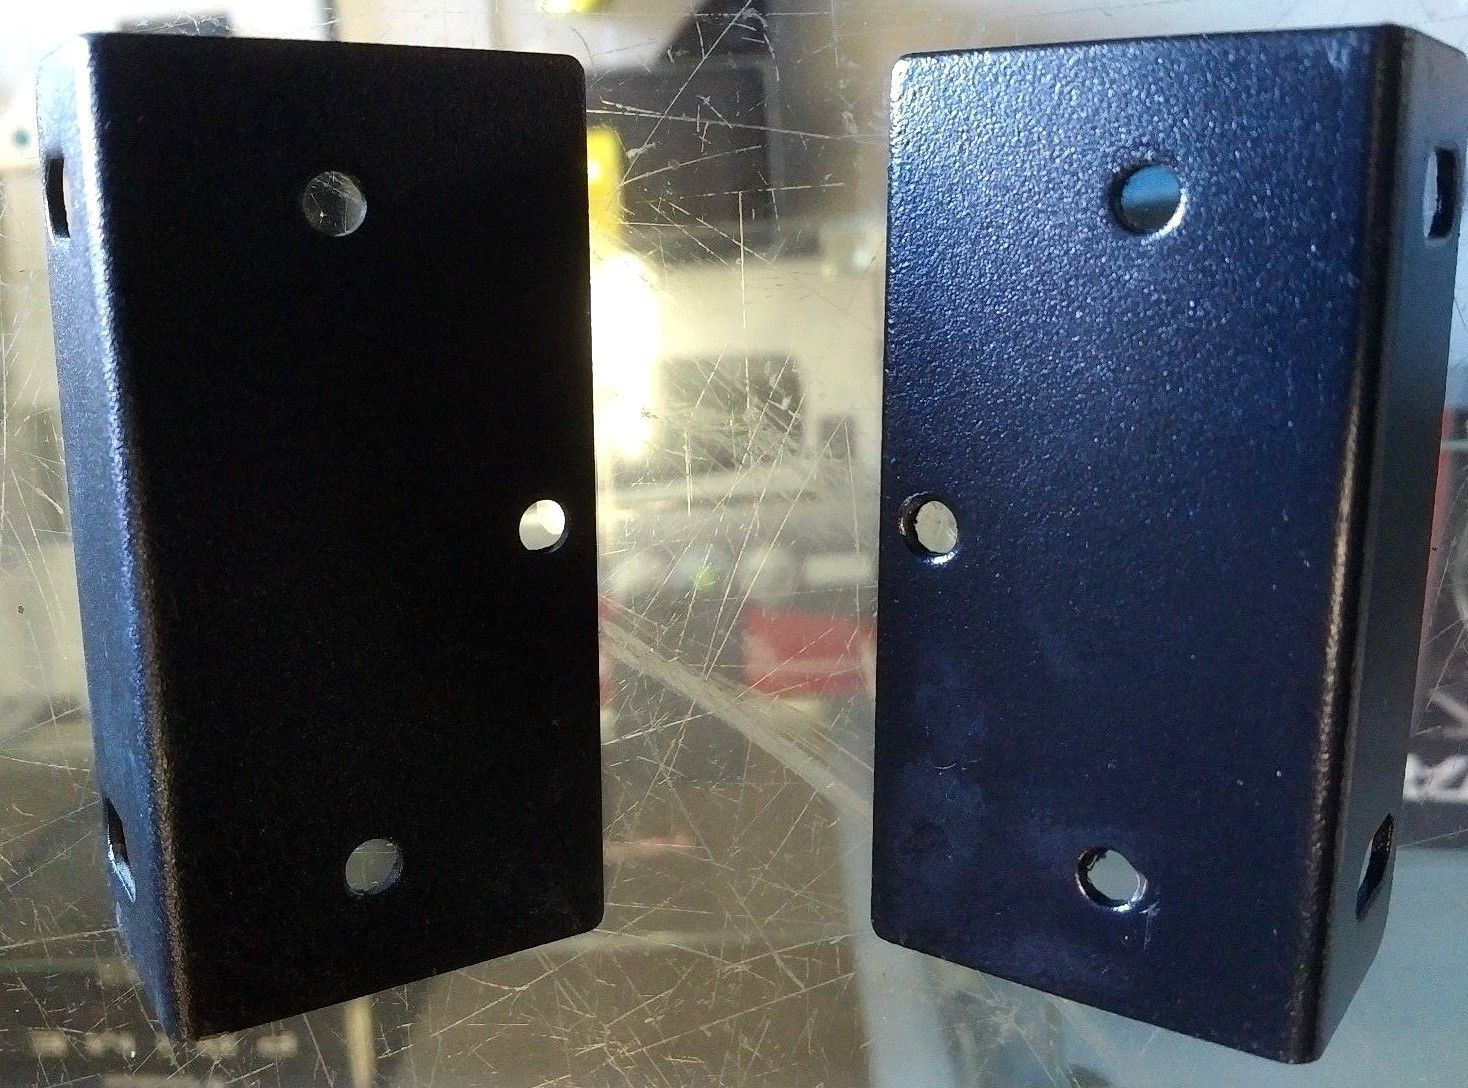 Universal Rack Mount Ears Brackets for 3 1/8 inch high 17 inch components